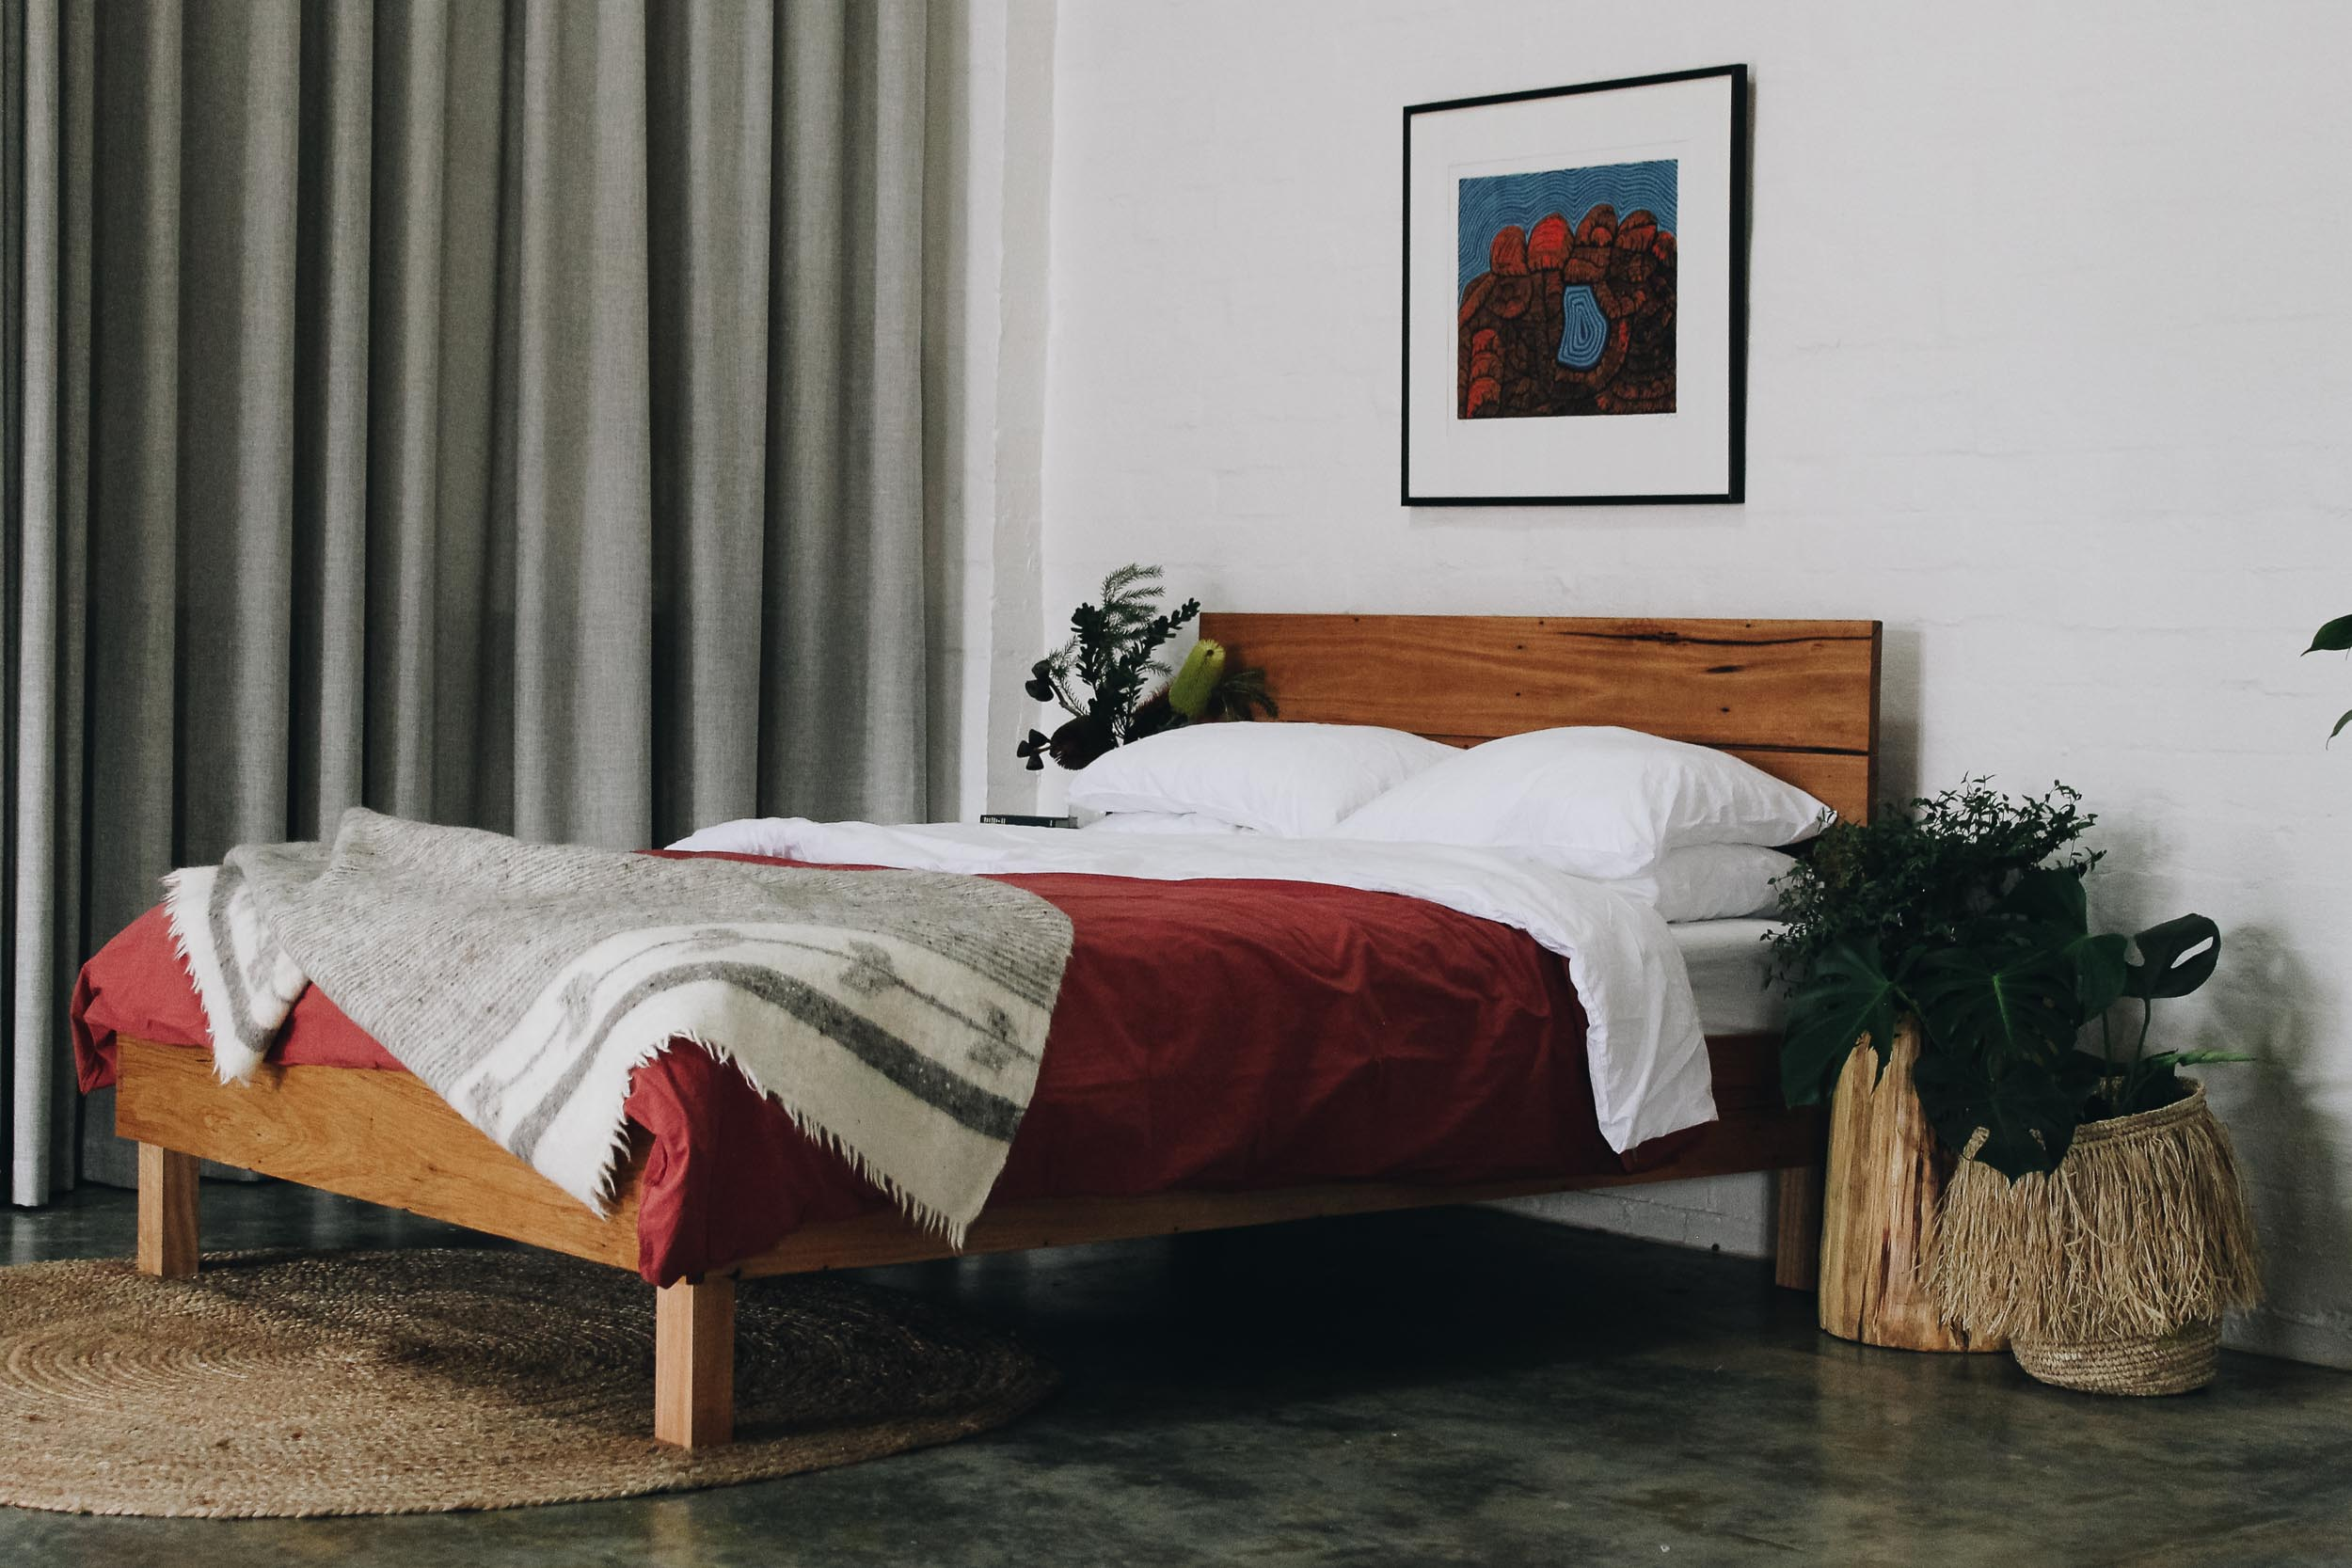 Al and Imo Handmade - Feature Headboard Square Bed - Surf Coast - Melbourne - Australia-17.jpg